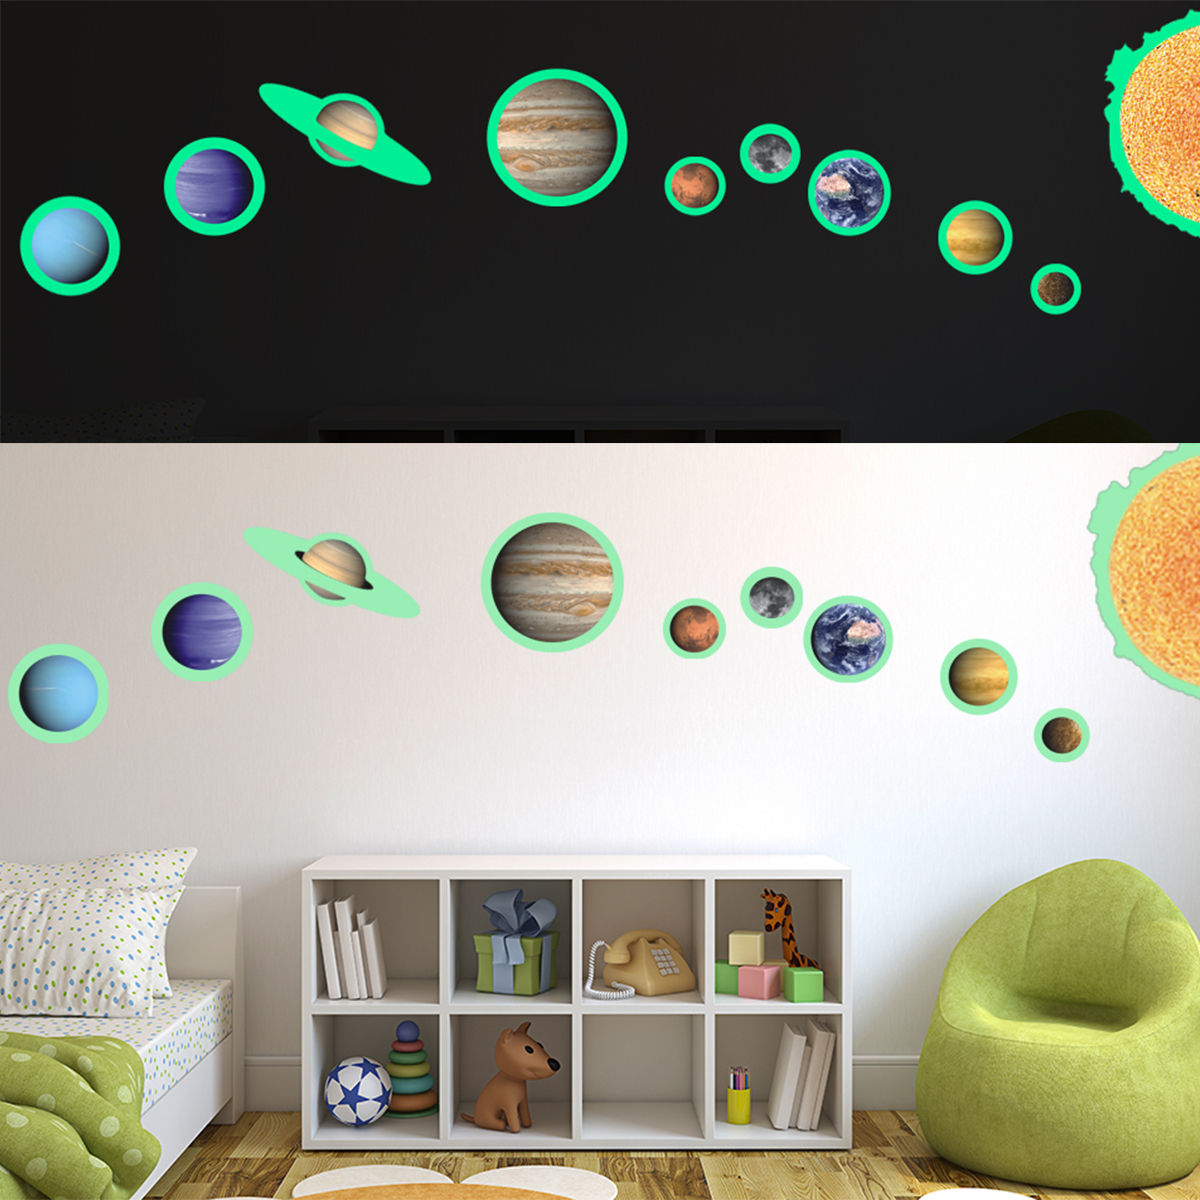 9# Planets Mars Room Decor Glow In The Dark SOLAR SYSTEM Wall Stickers